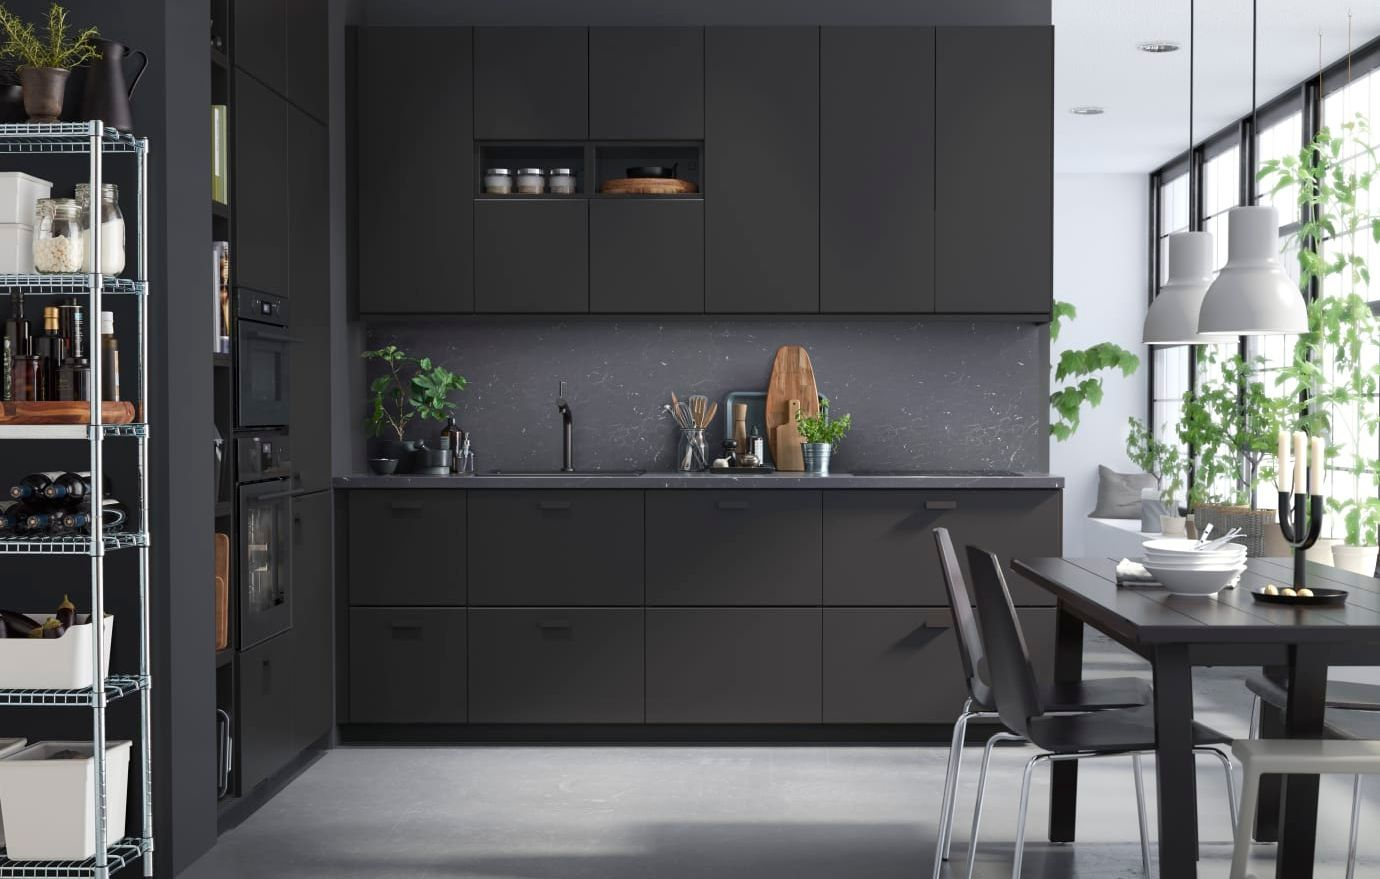 Cosmo condo kitchen showroom paris kitchens toronto - Ikea Kitchen With Anthracite Units And Dark Grey Walls And Dining Table